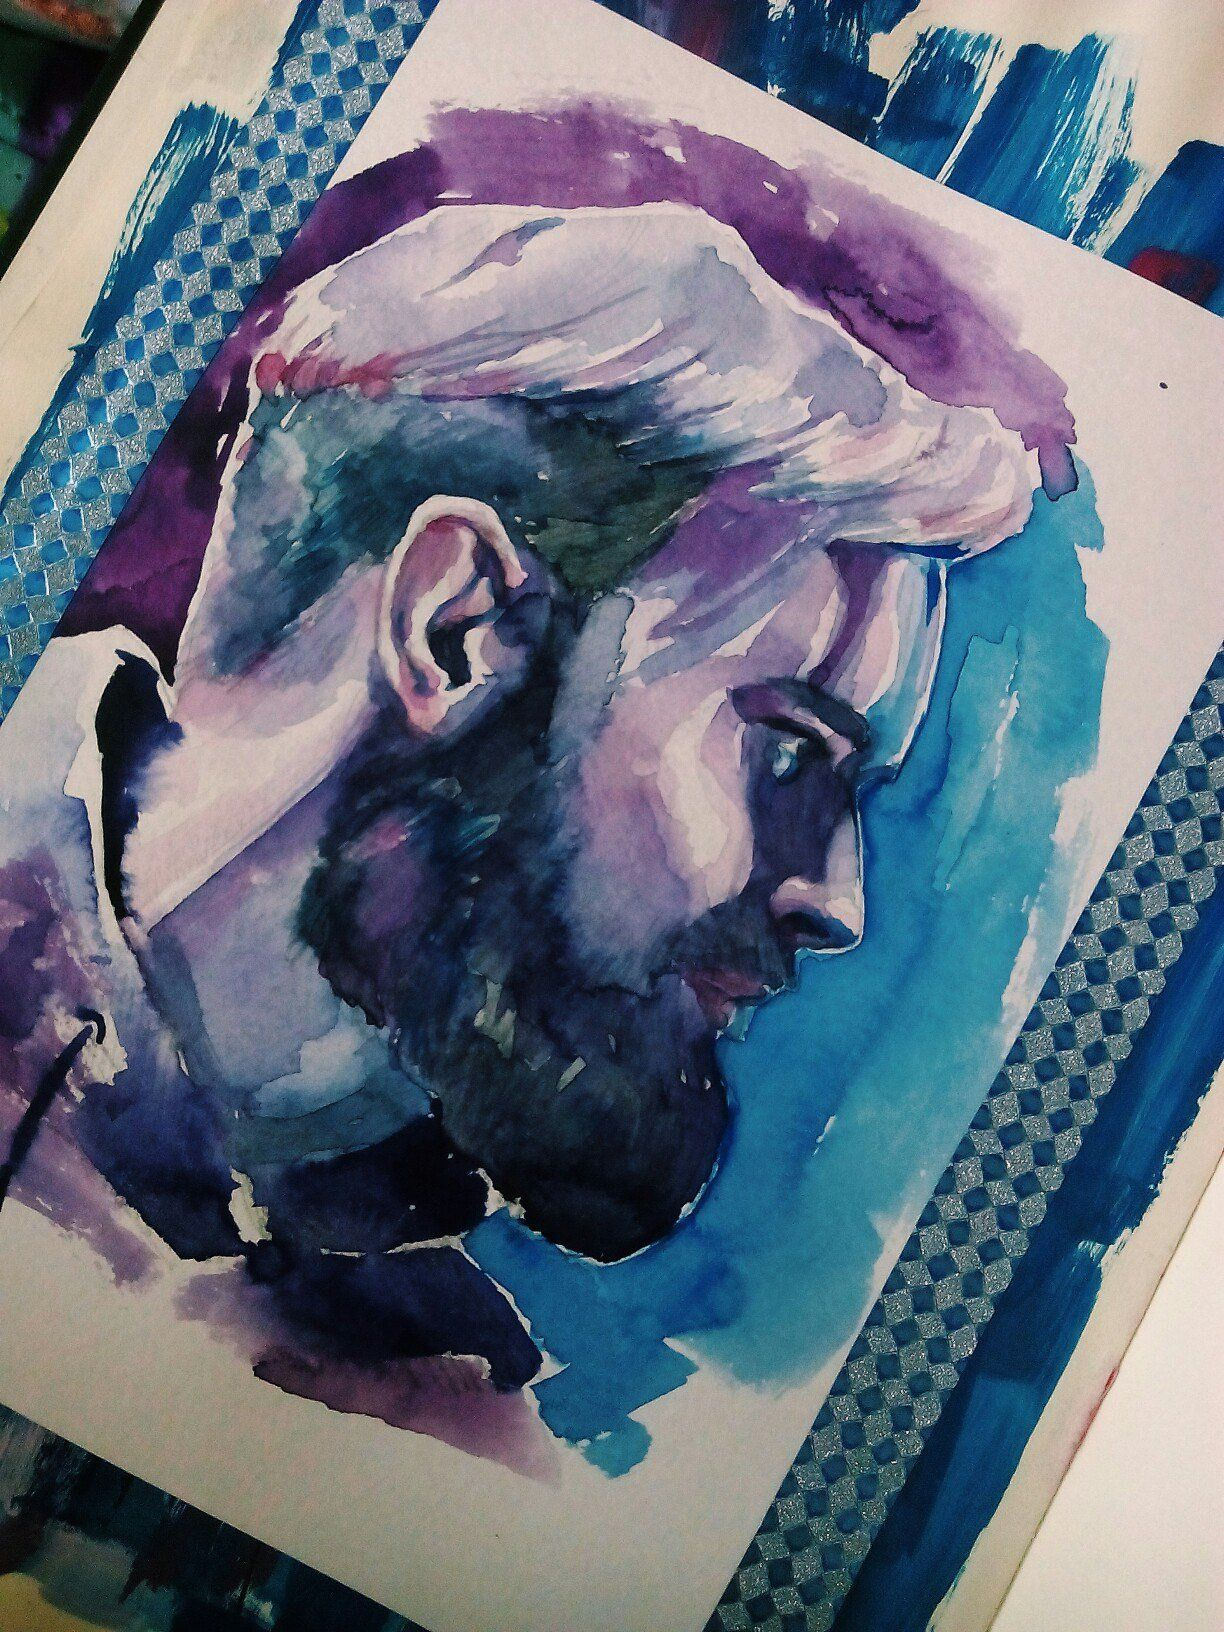 Amazing PewDiePie watercolor by ourcallboy on Reddit